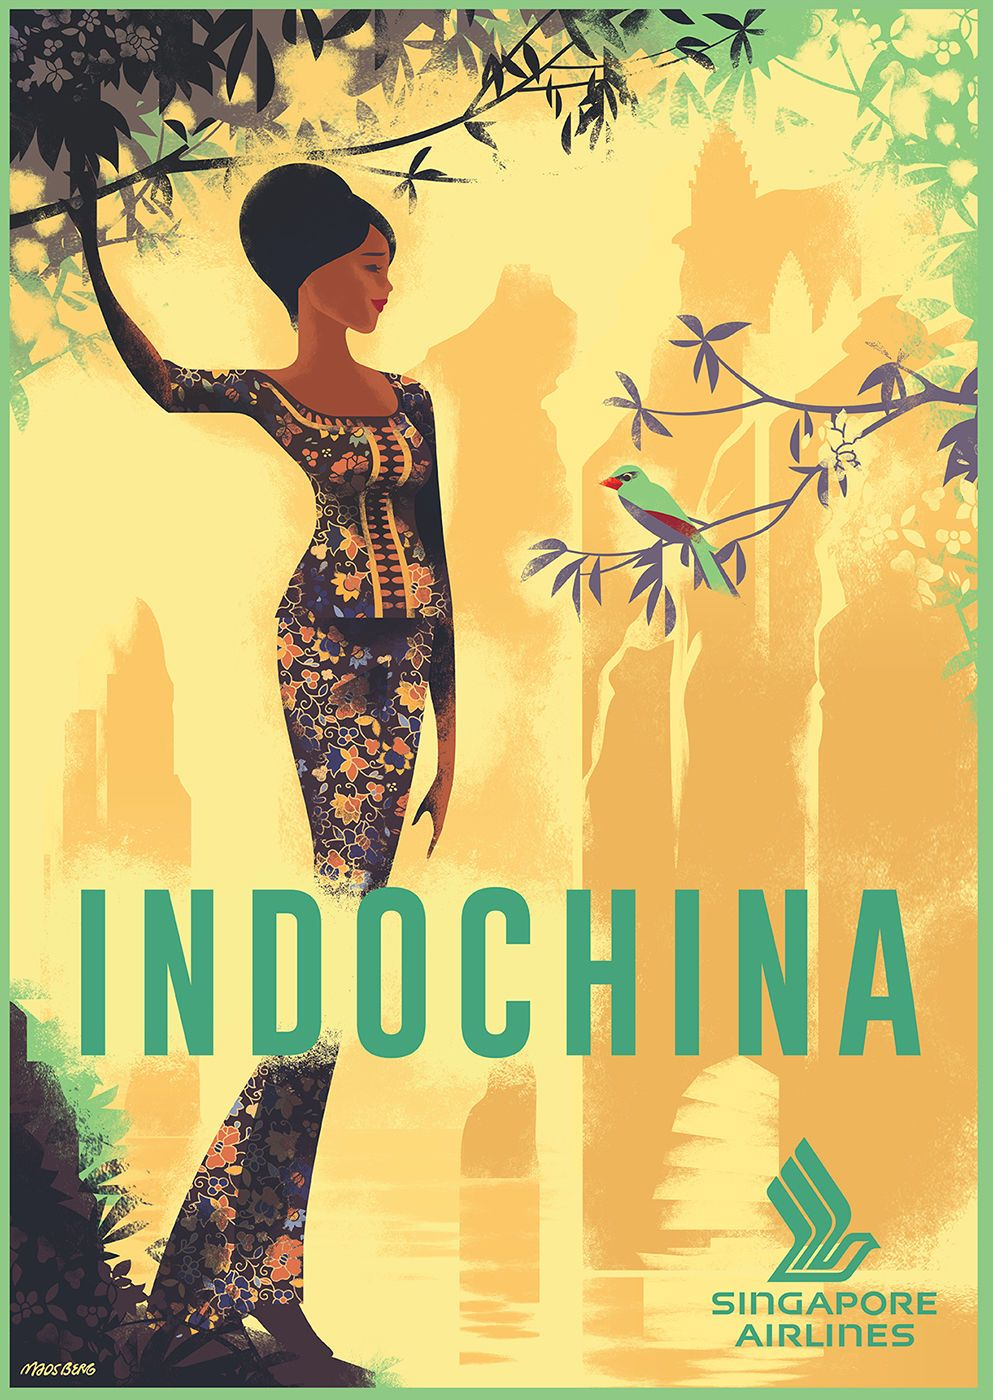 INDOCHINA Singapore Airlines